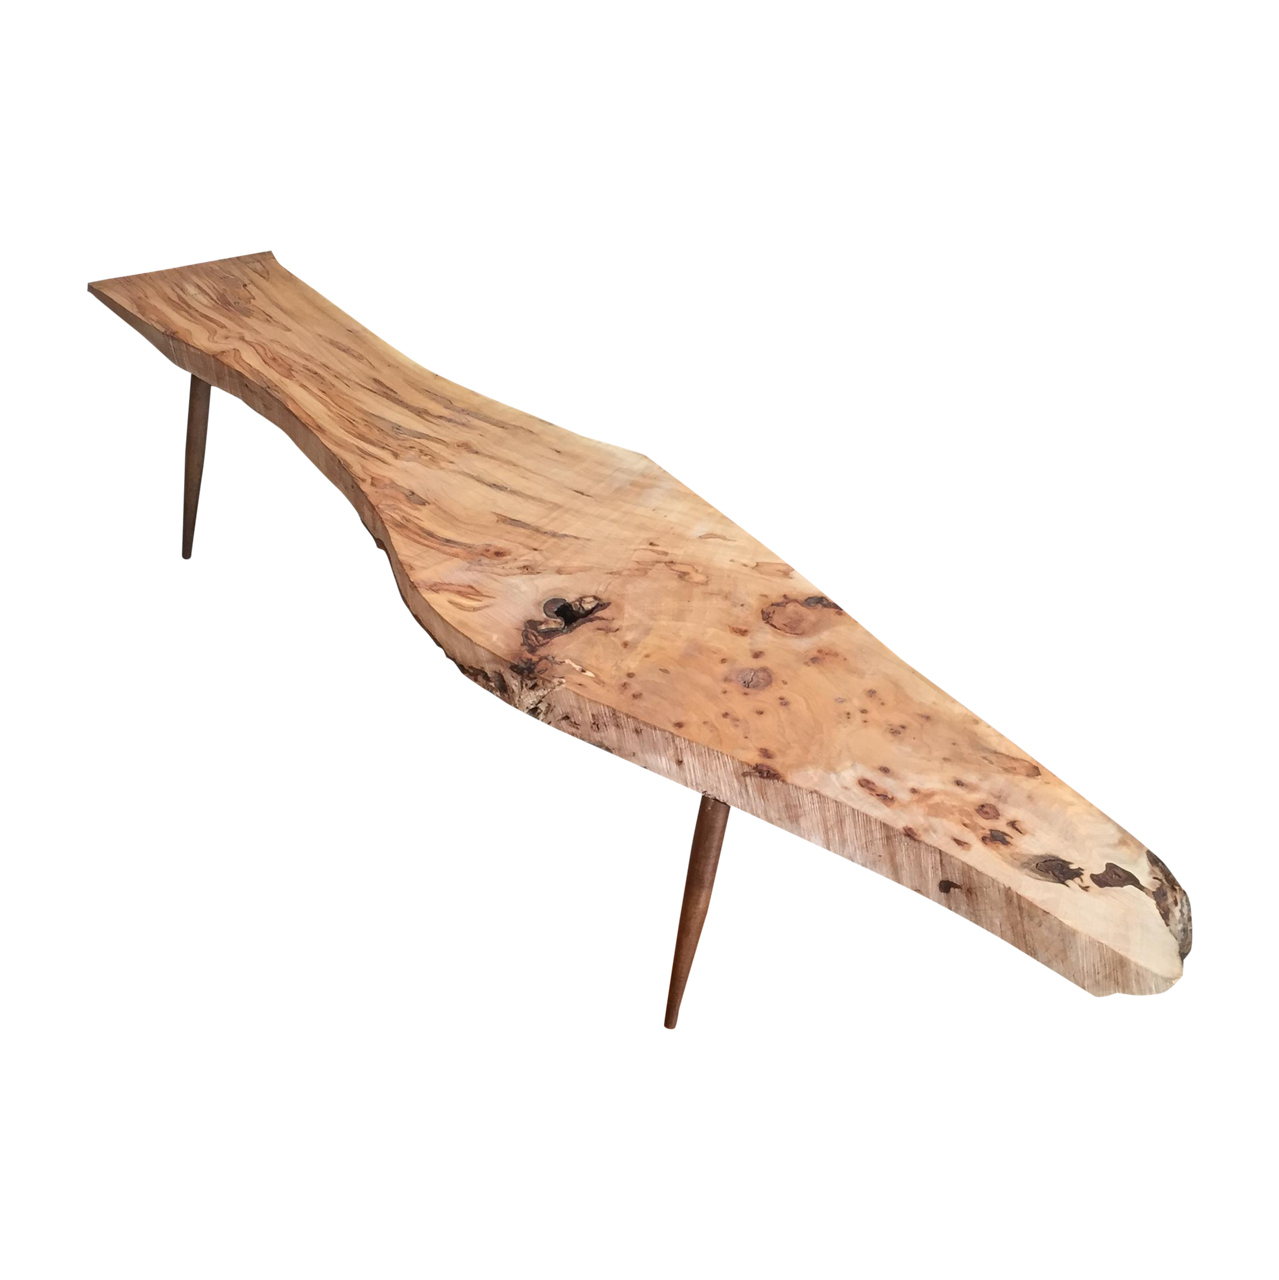 Live Edge Wood Slab Bench or Coffee Table - Ambrosia Maple | touchGOODS